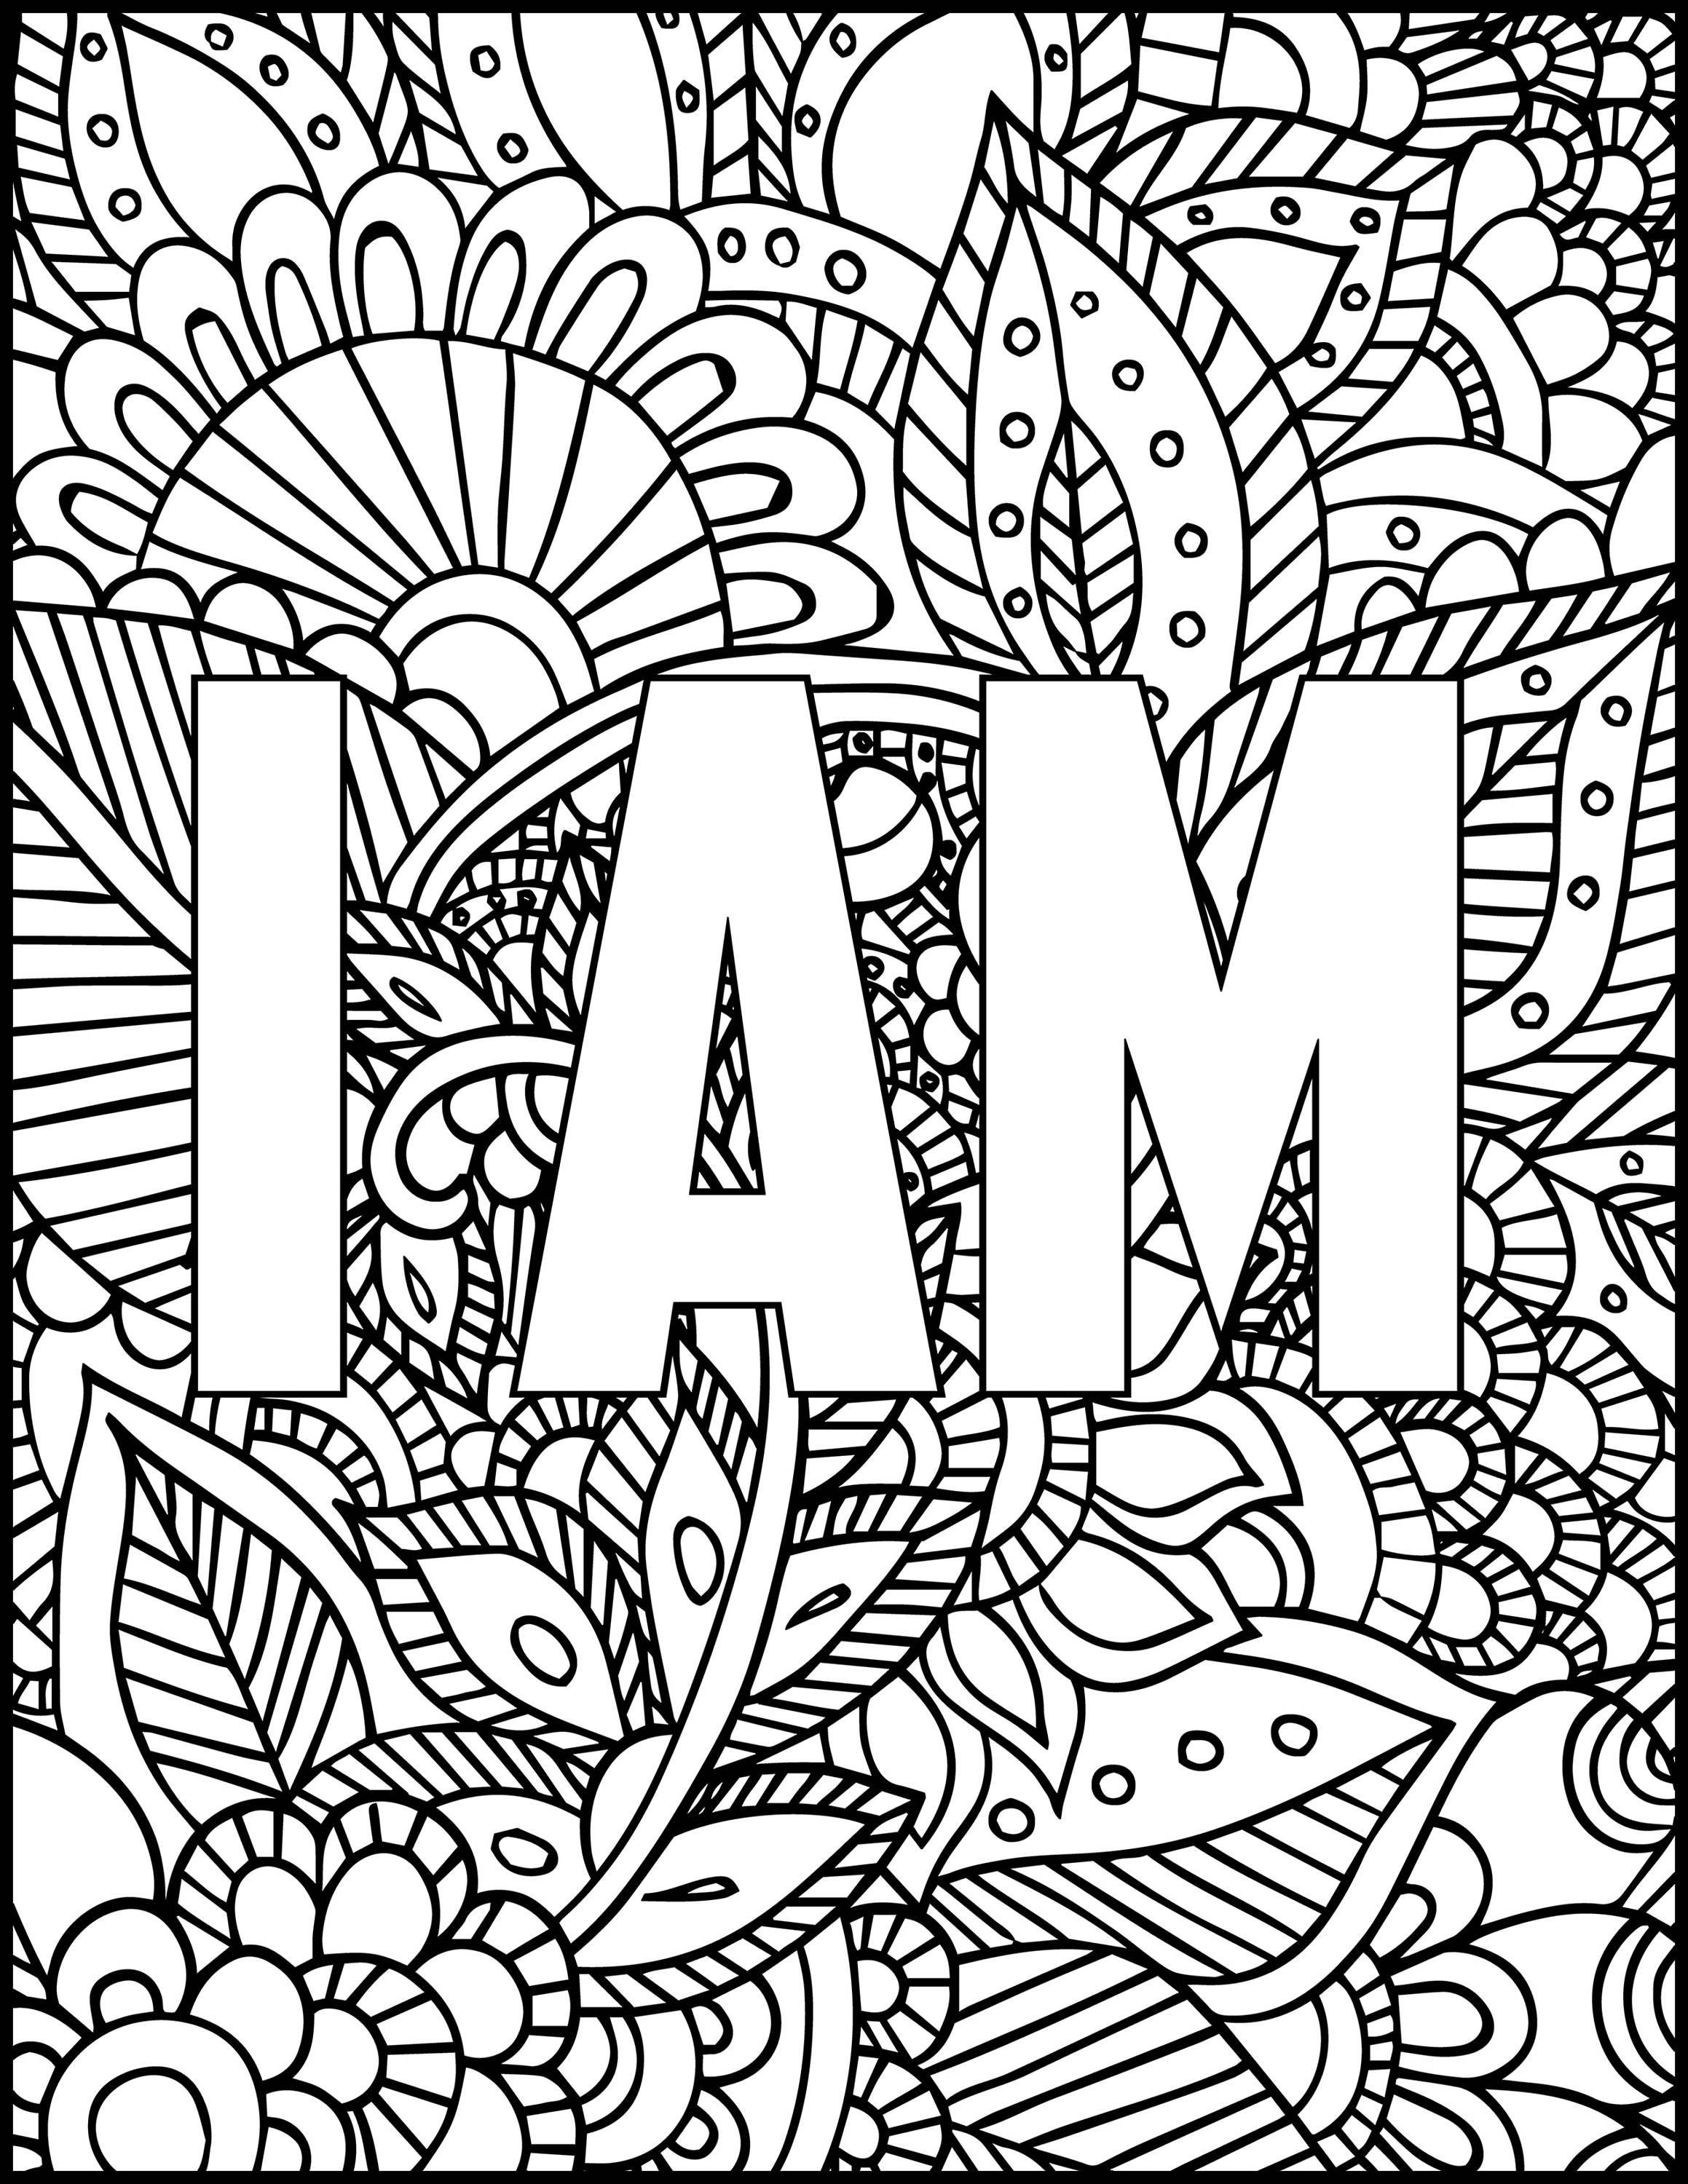 free pictures to print free printable goofy coloring pages for kids to print pictures free